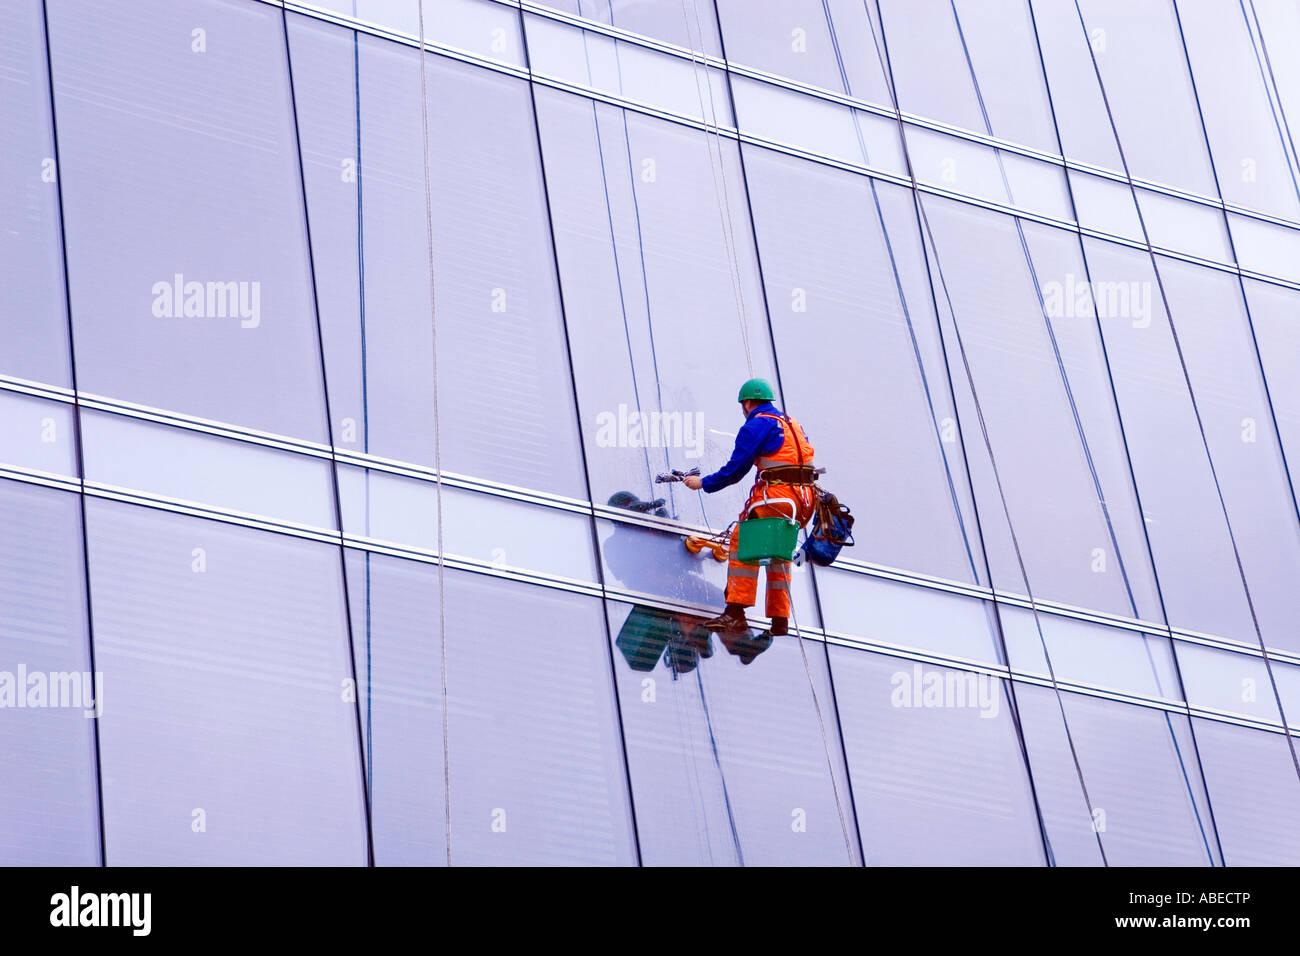 window cleaner suspended on wires at multistorey office block, Glasgow city centre, Scotland - Stock Image